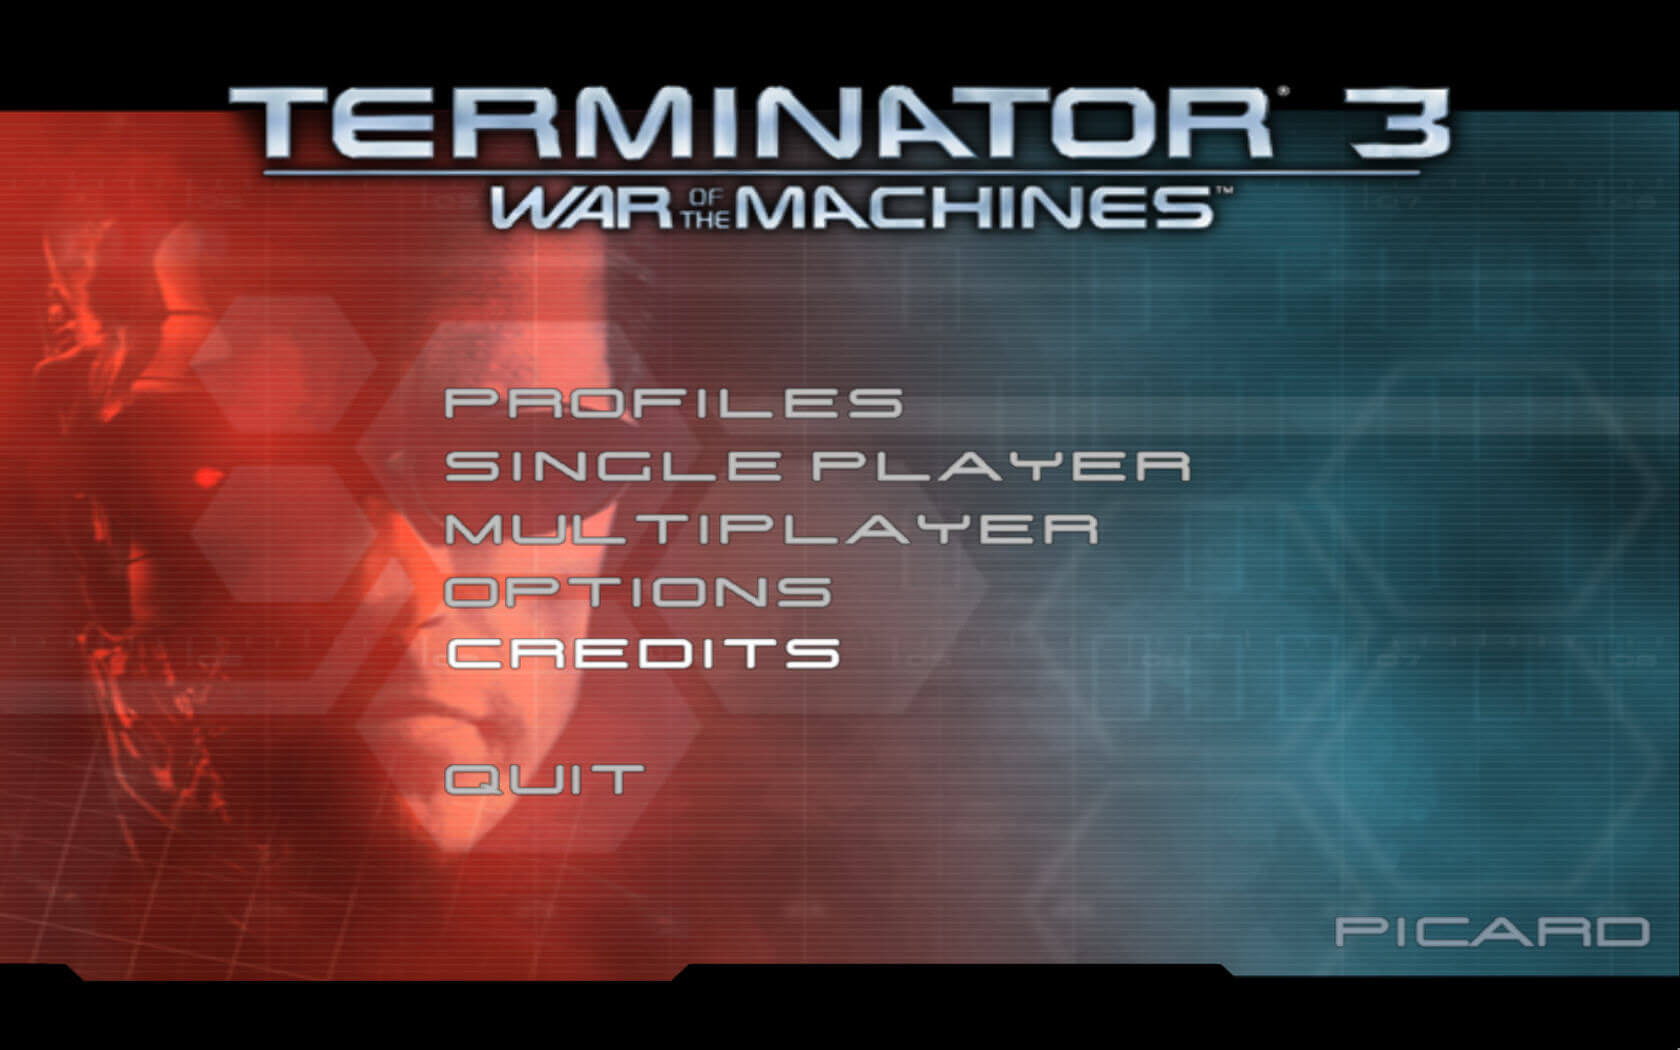 Download Terminator 3: War of the Machines (Windows) - My Abandonware